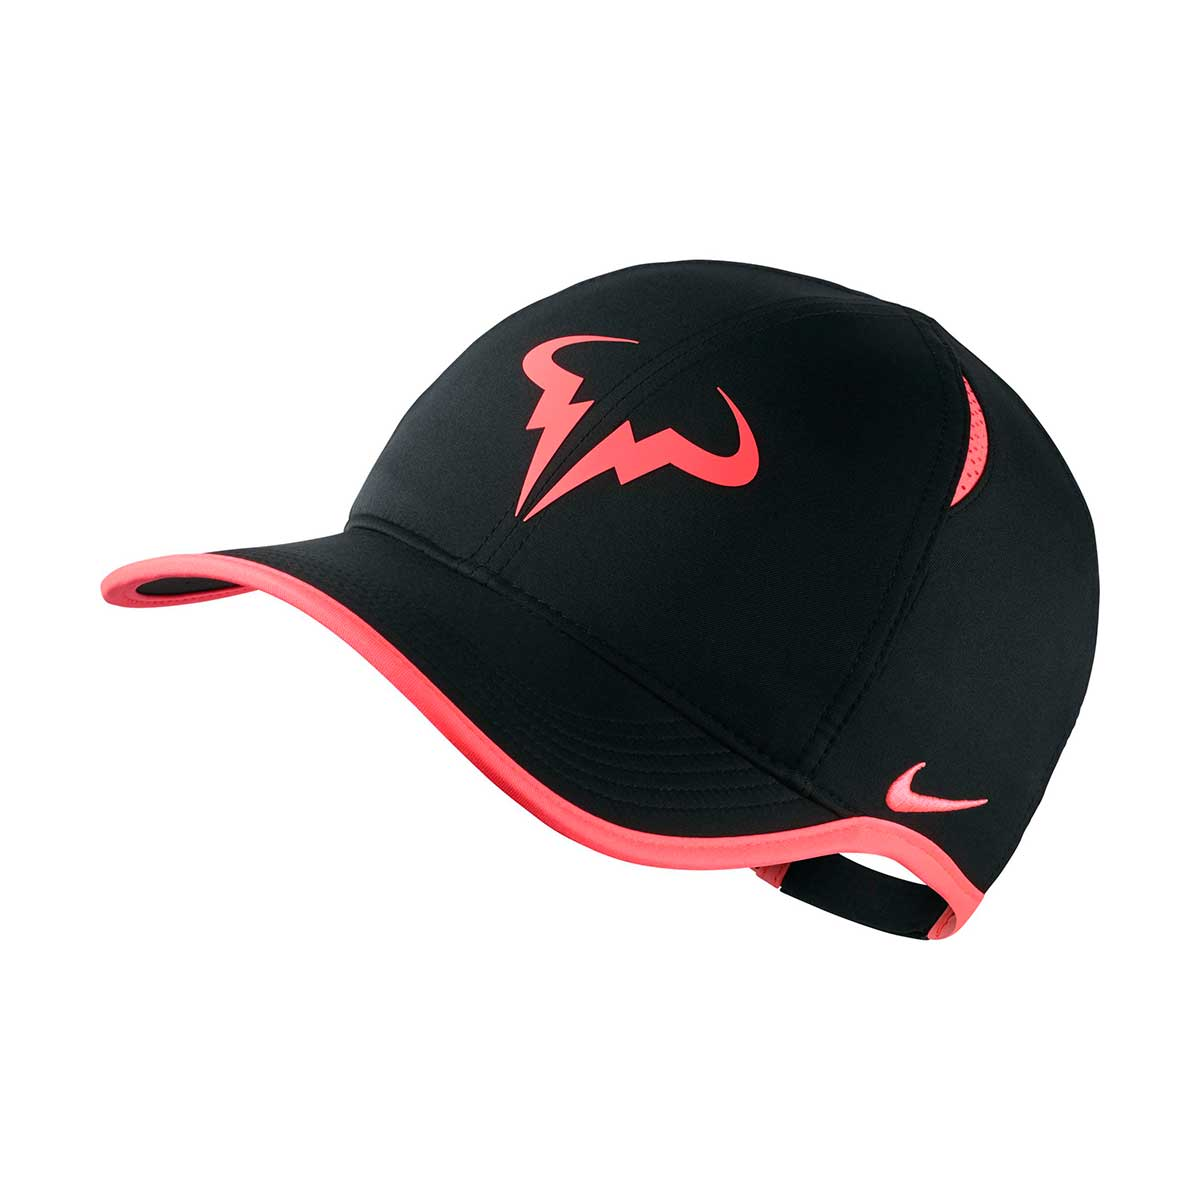 7b04efc26 Nike Rafa Feather Light Bull Cap (Black/White)